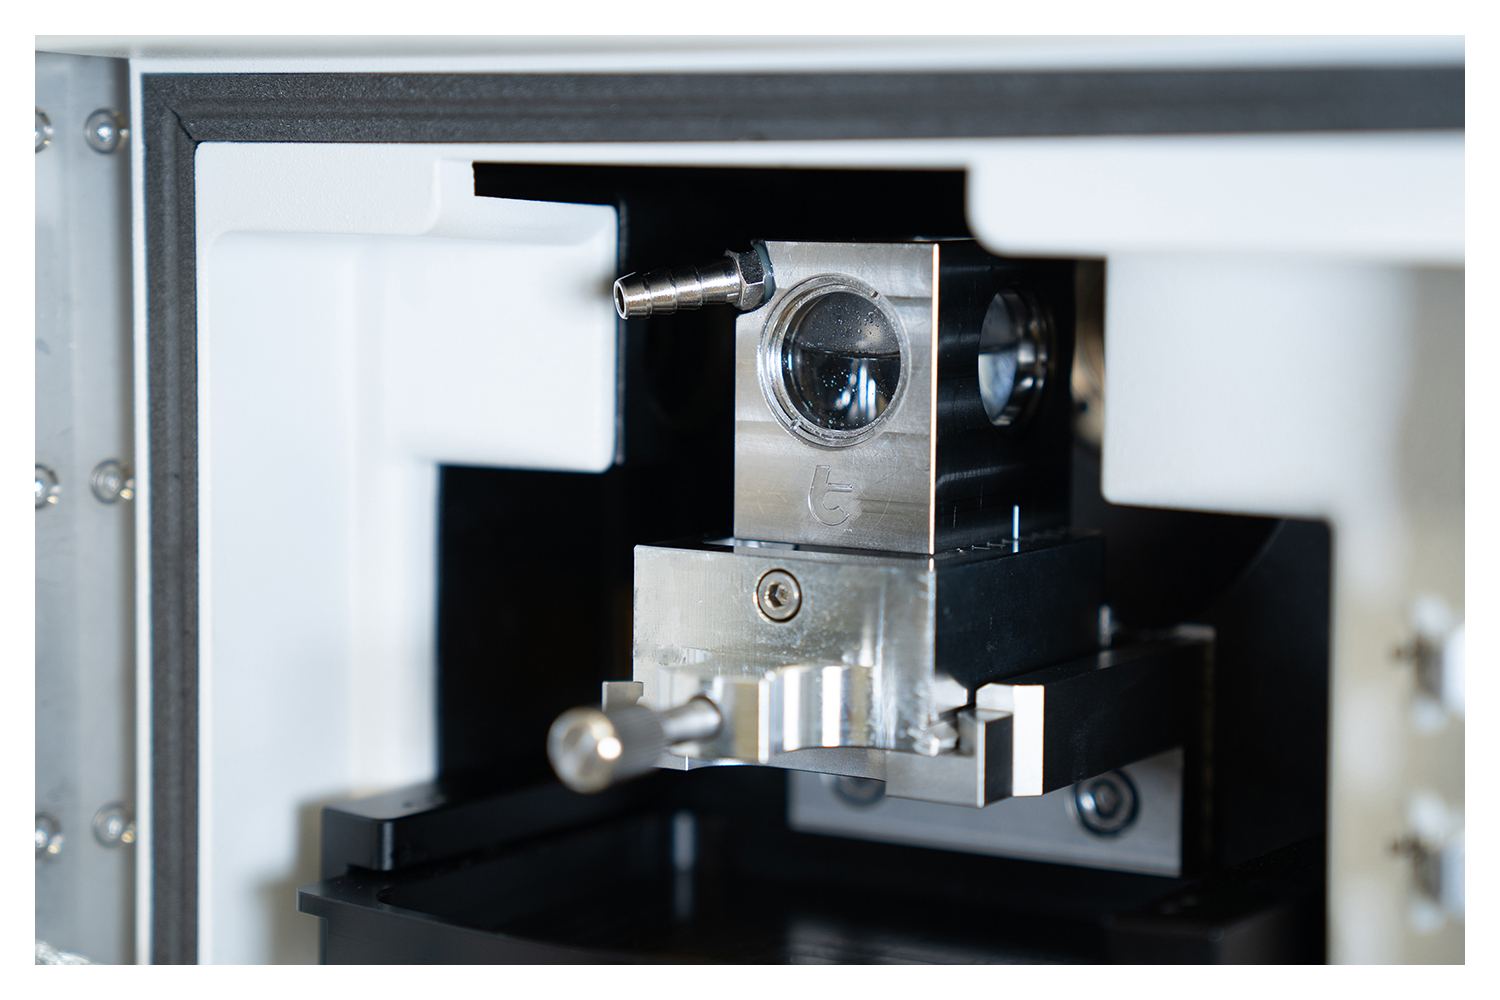 Close up image of a microscope